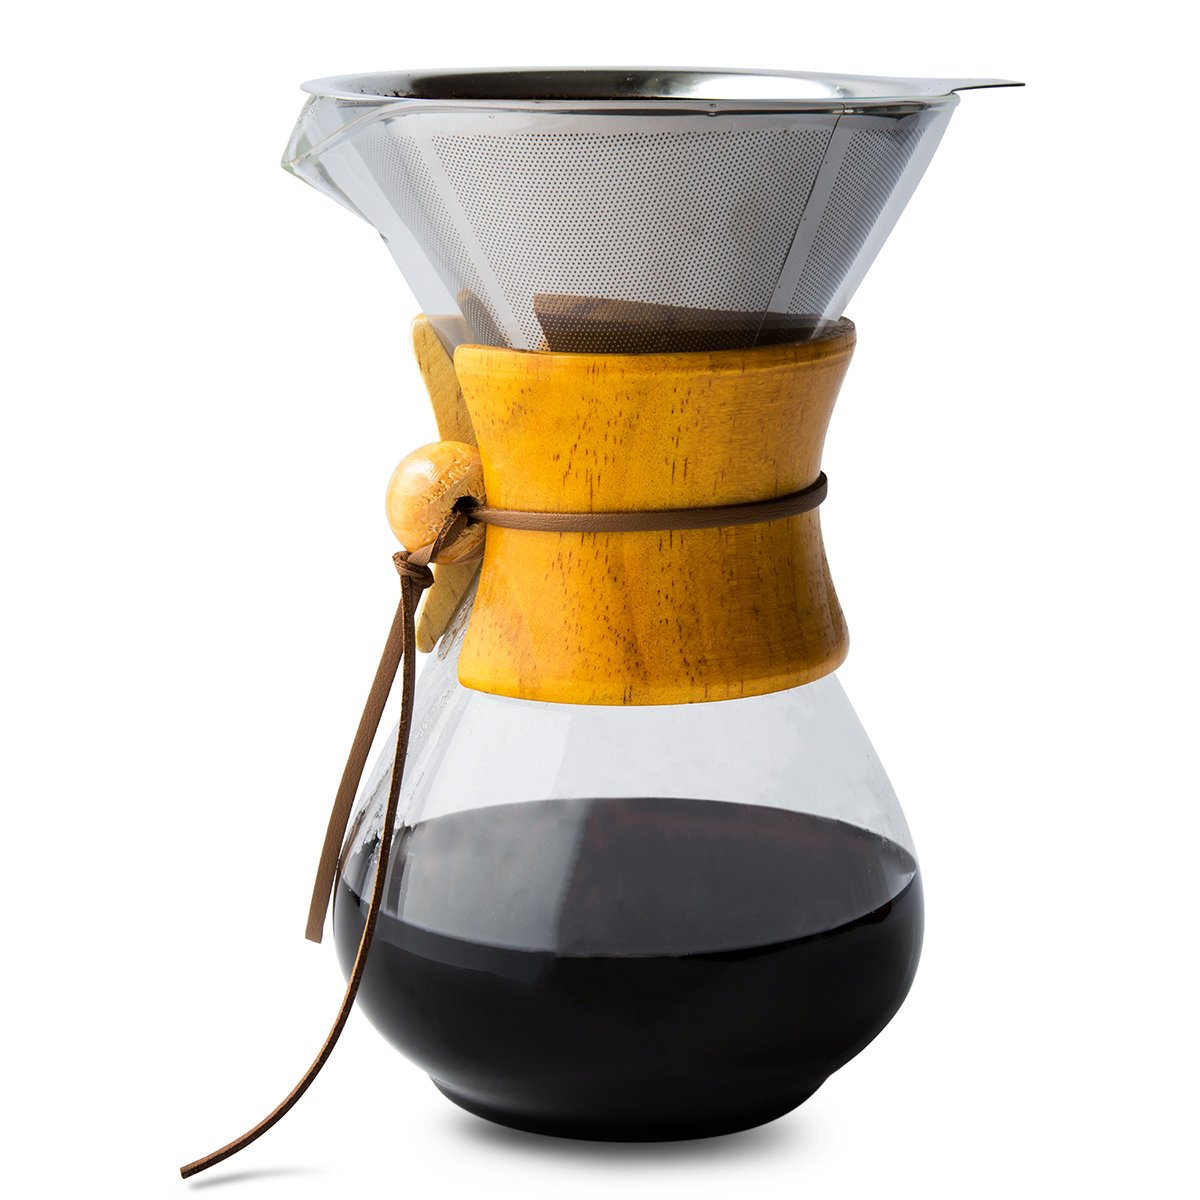 Comfify Pour Over Coffee Maker Review